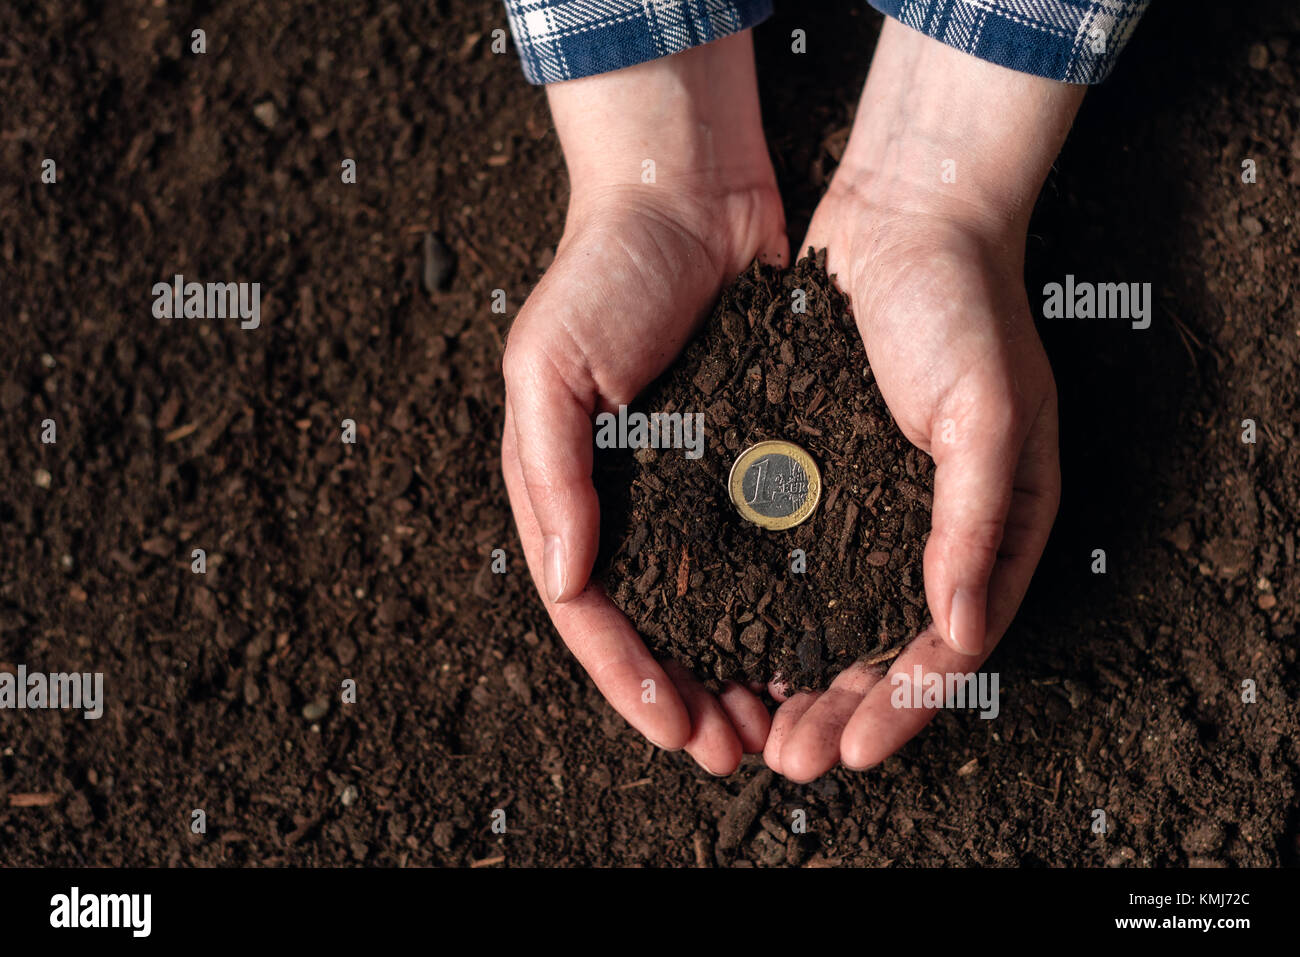 Making money from agricultural activity and earning extra income, female farmer handful of soil with euro coin - Stock Image